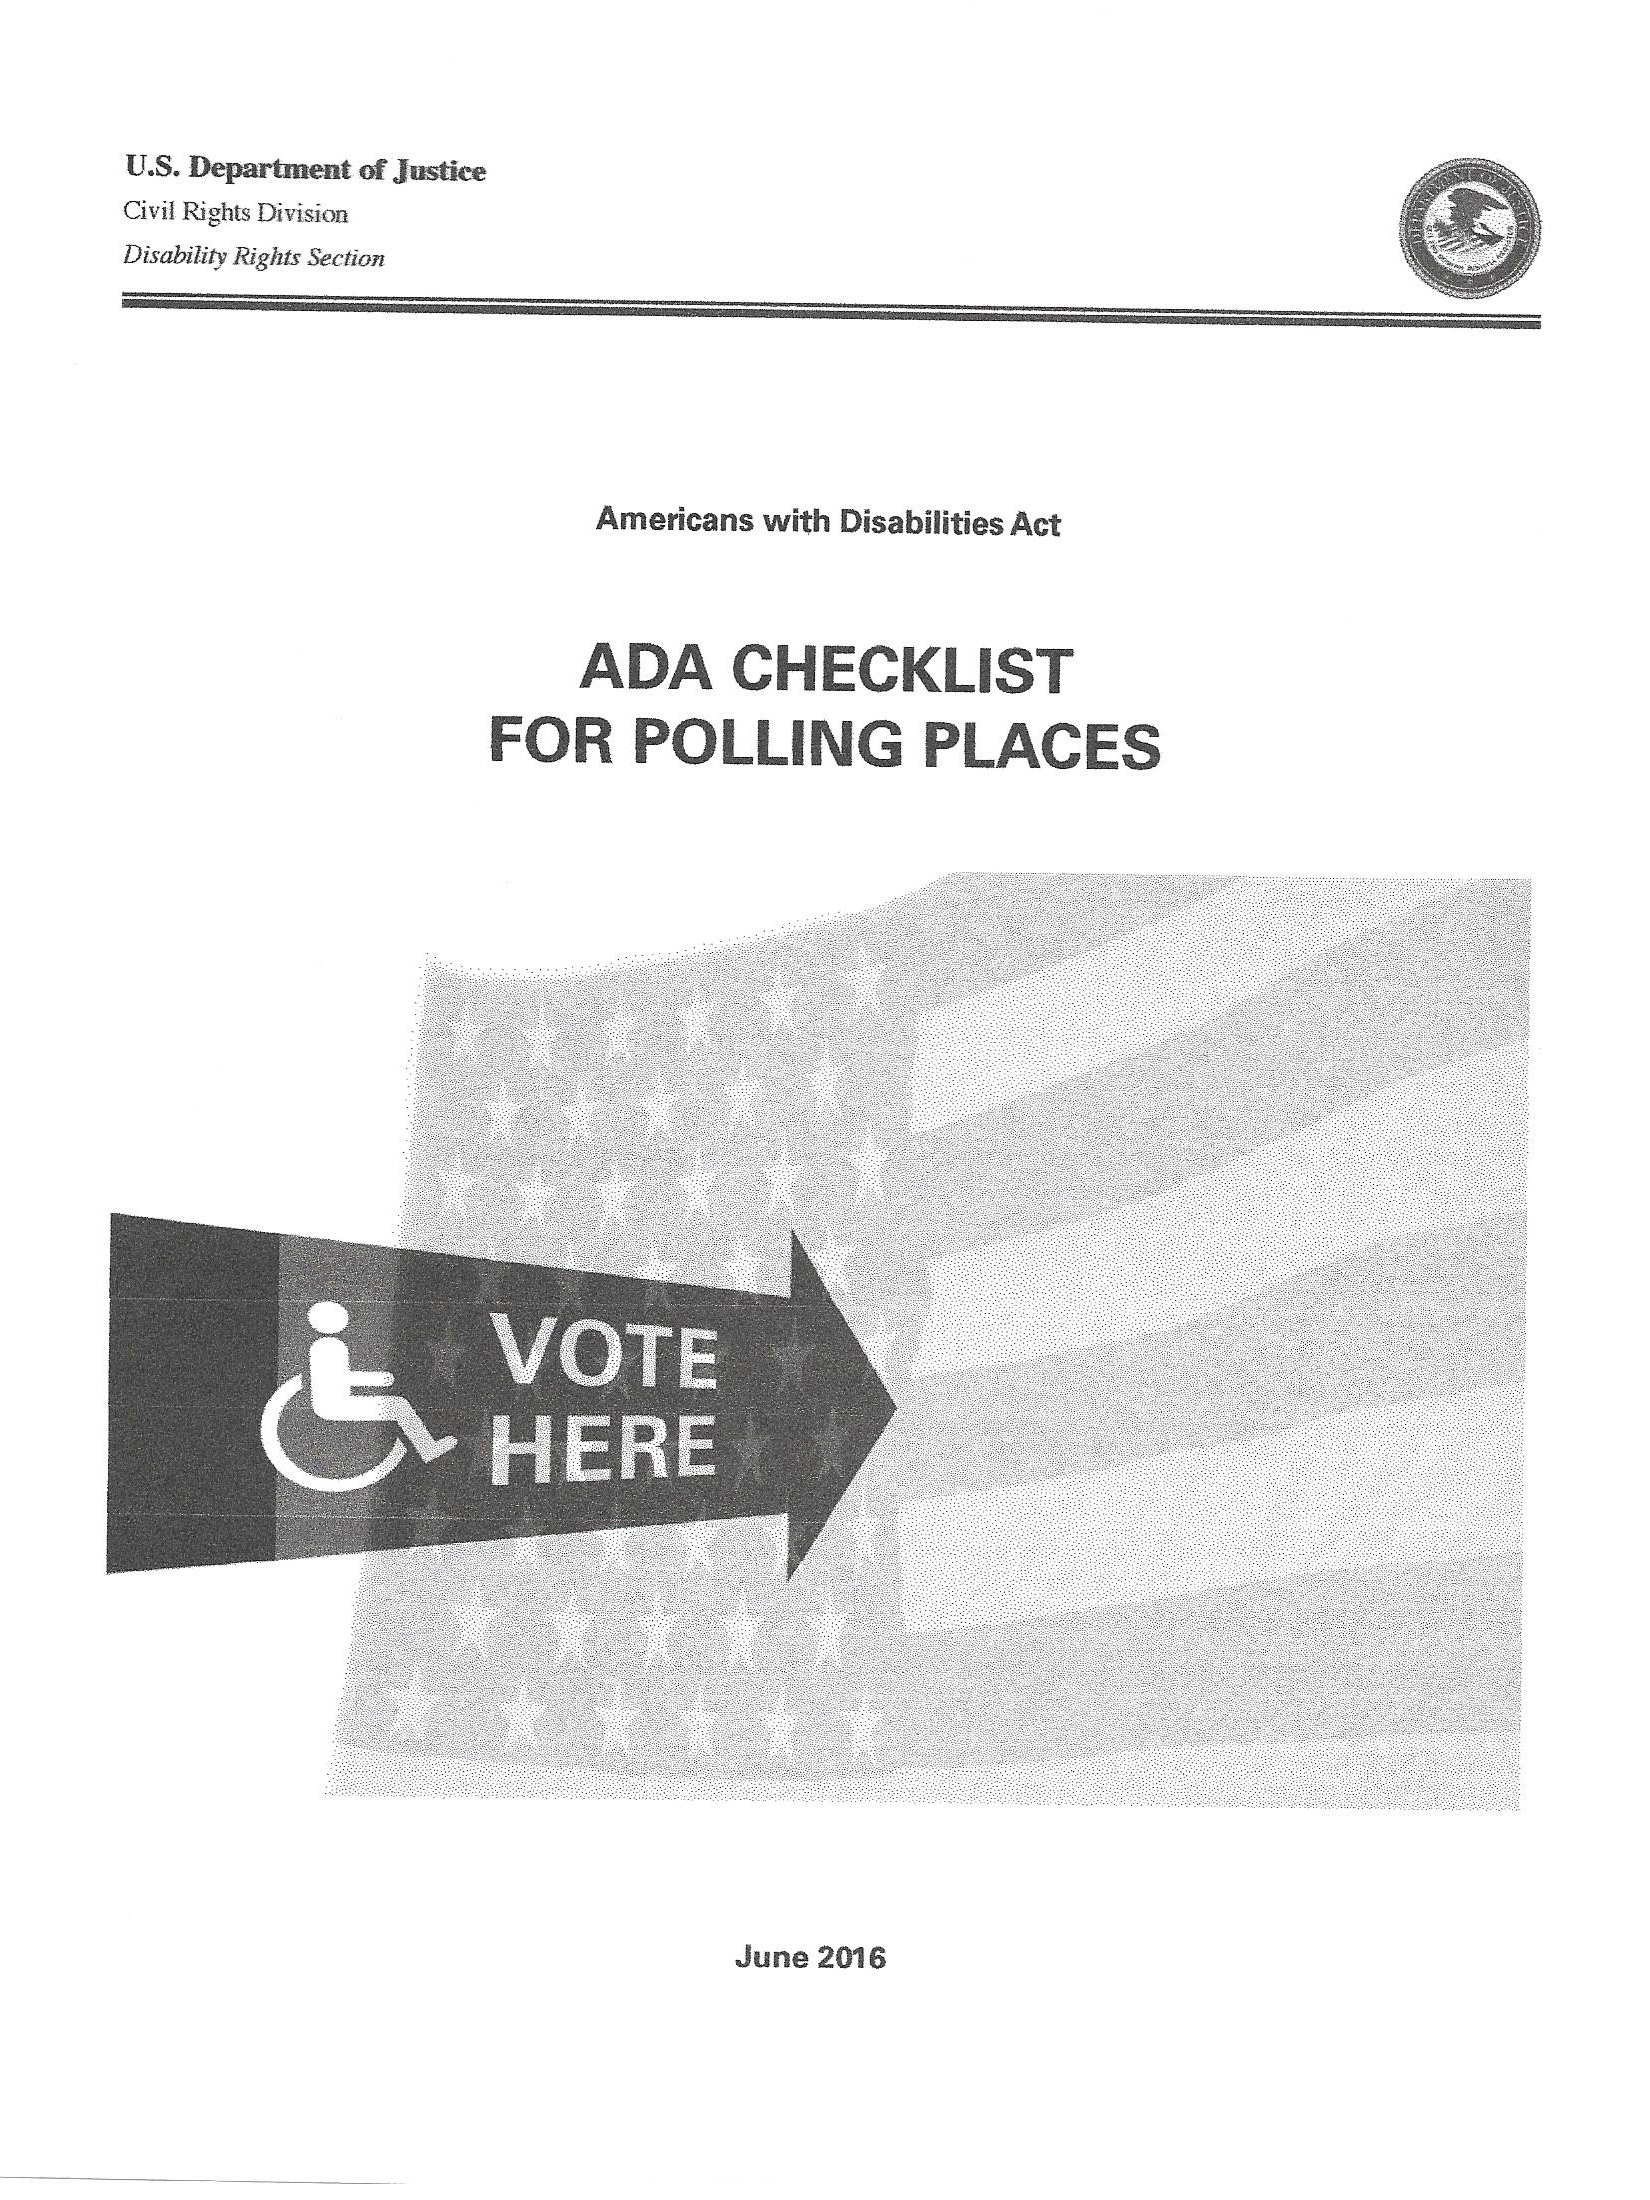 ADA Checklist for Polling Places